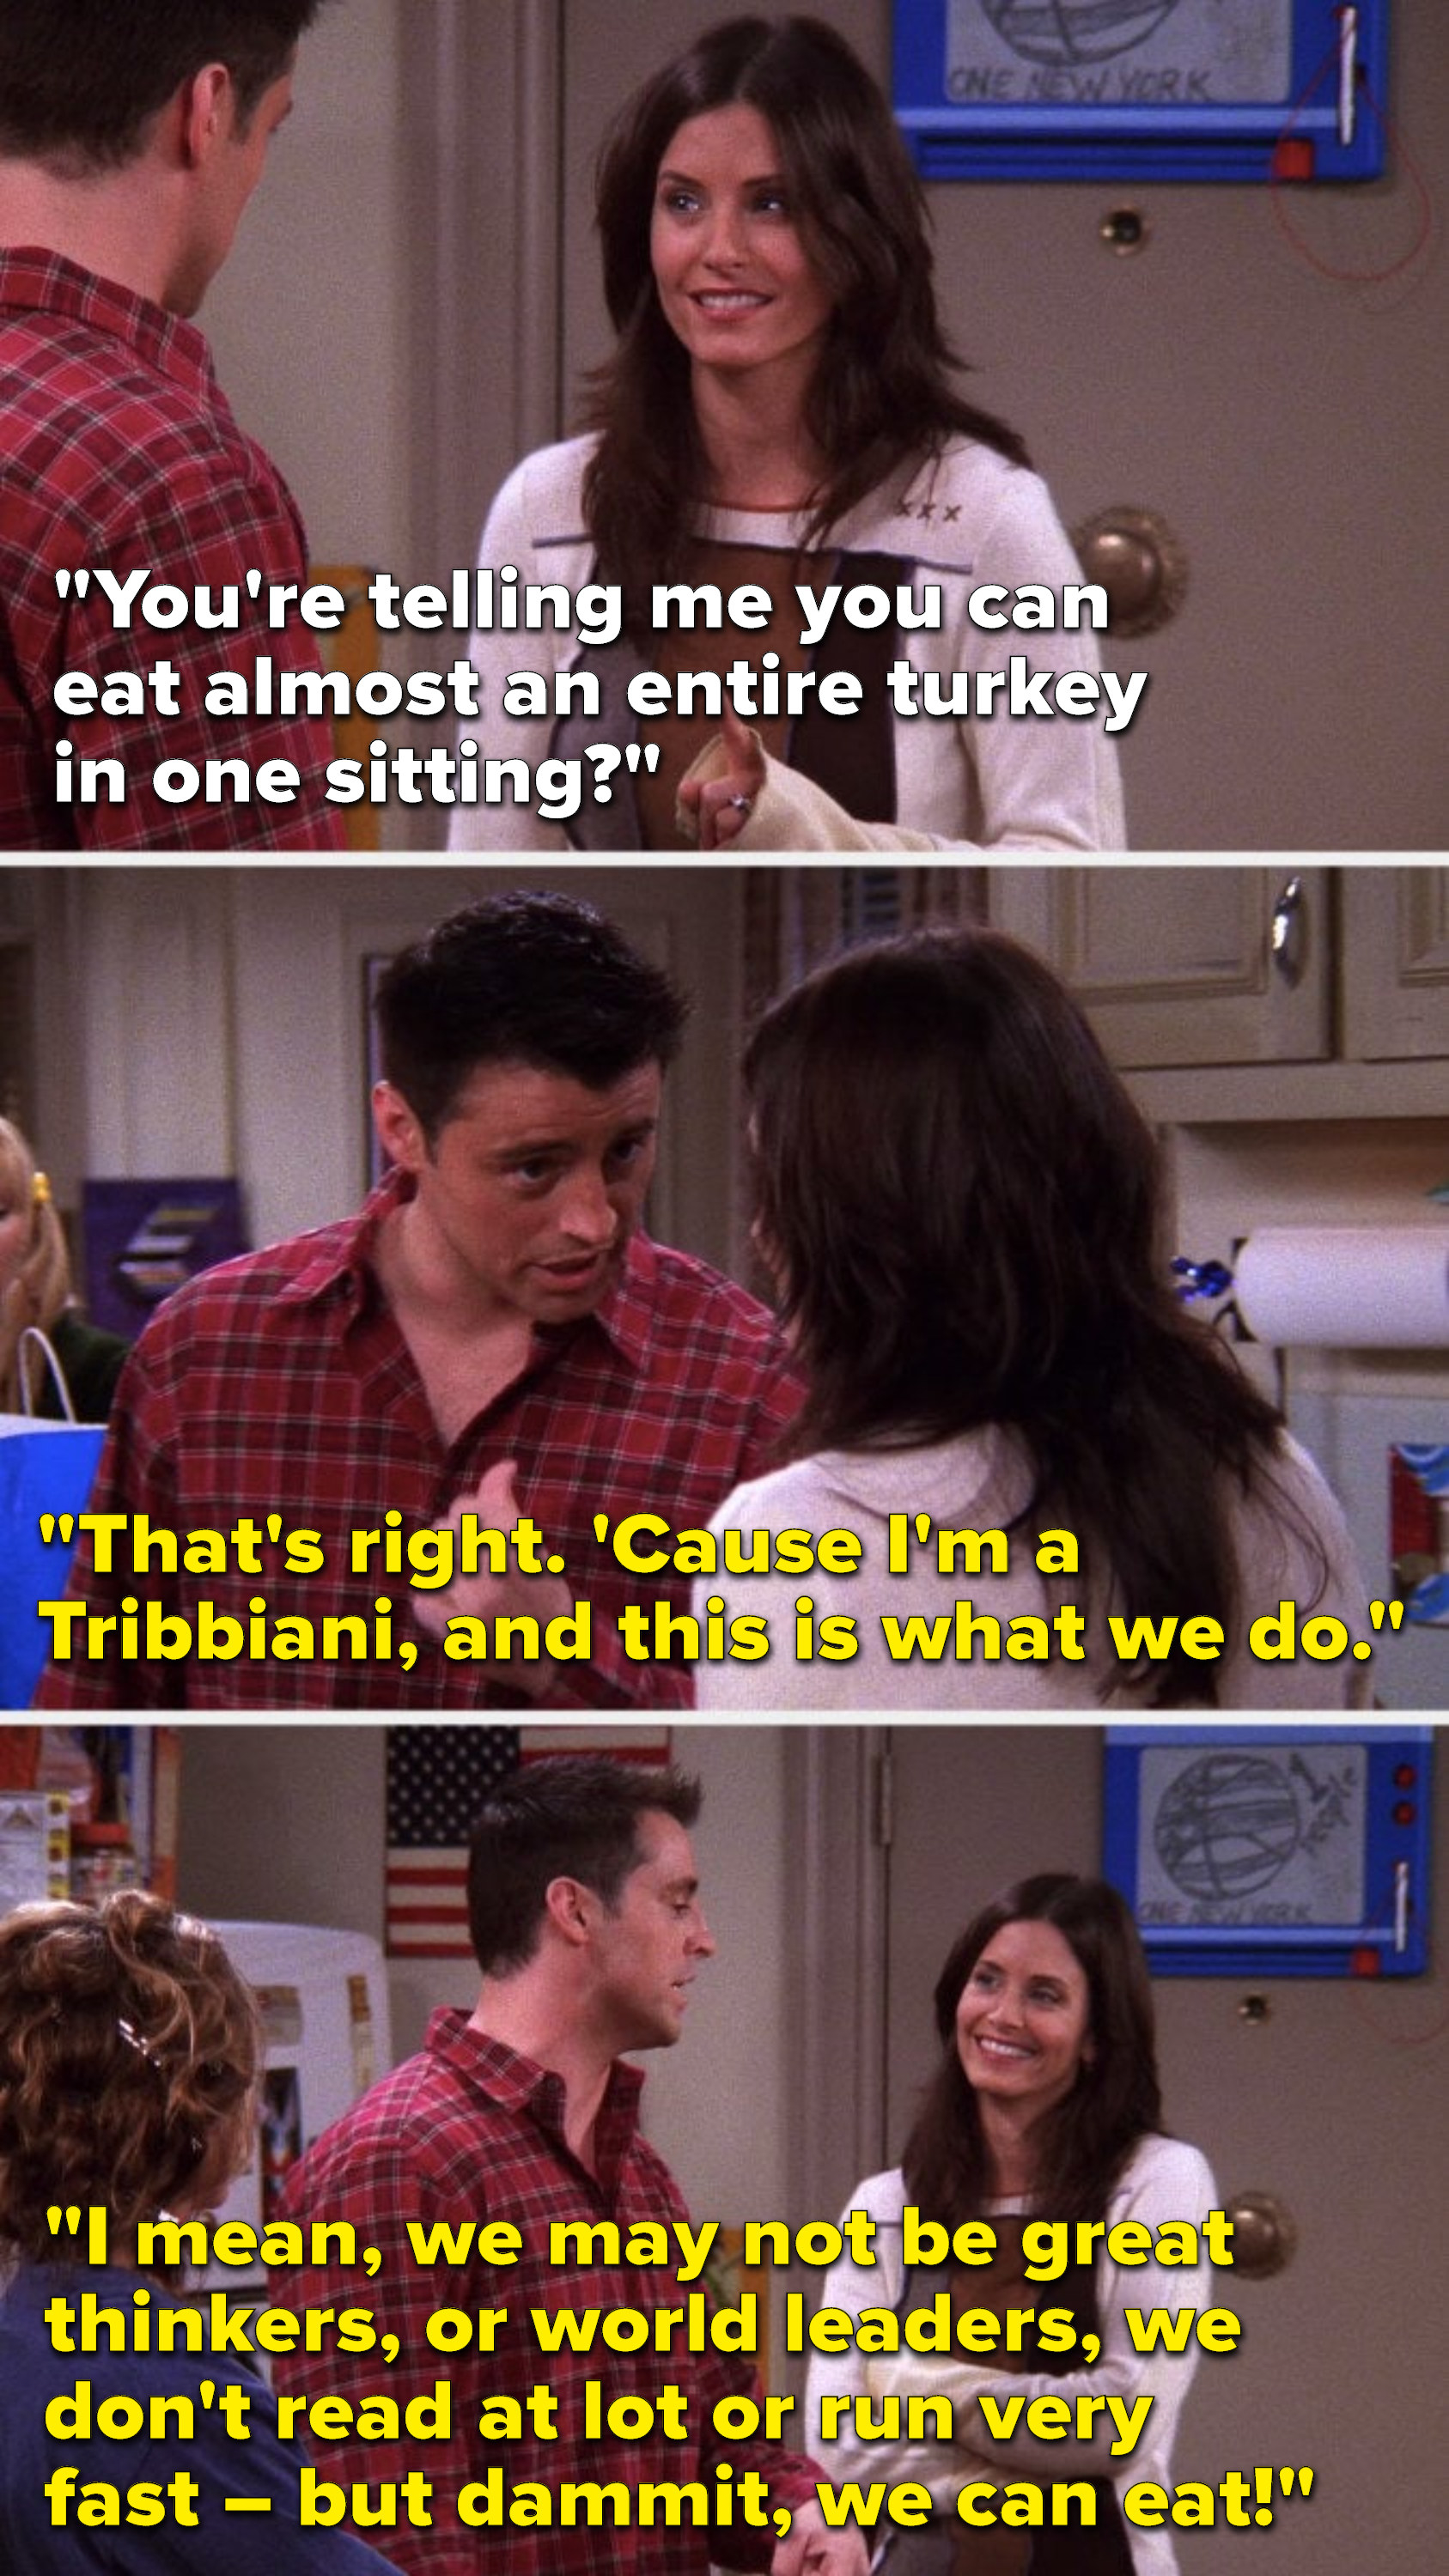 """Monica asks, """"You're telling me you can eat almost an entire turkey in one sitting,"""" and Joey says, """"That's right, I'm a Tribbiani, we may not be great thinkers or world leaders, we don't read at lot or run very fast – but dammit we can eat"""""""